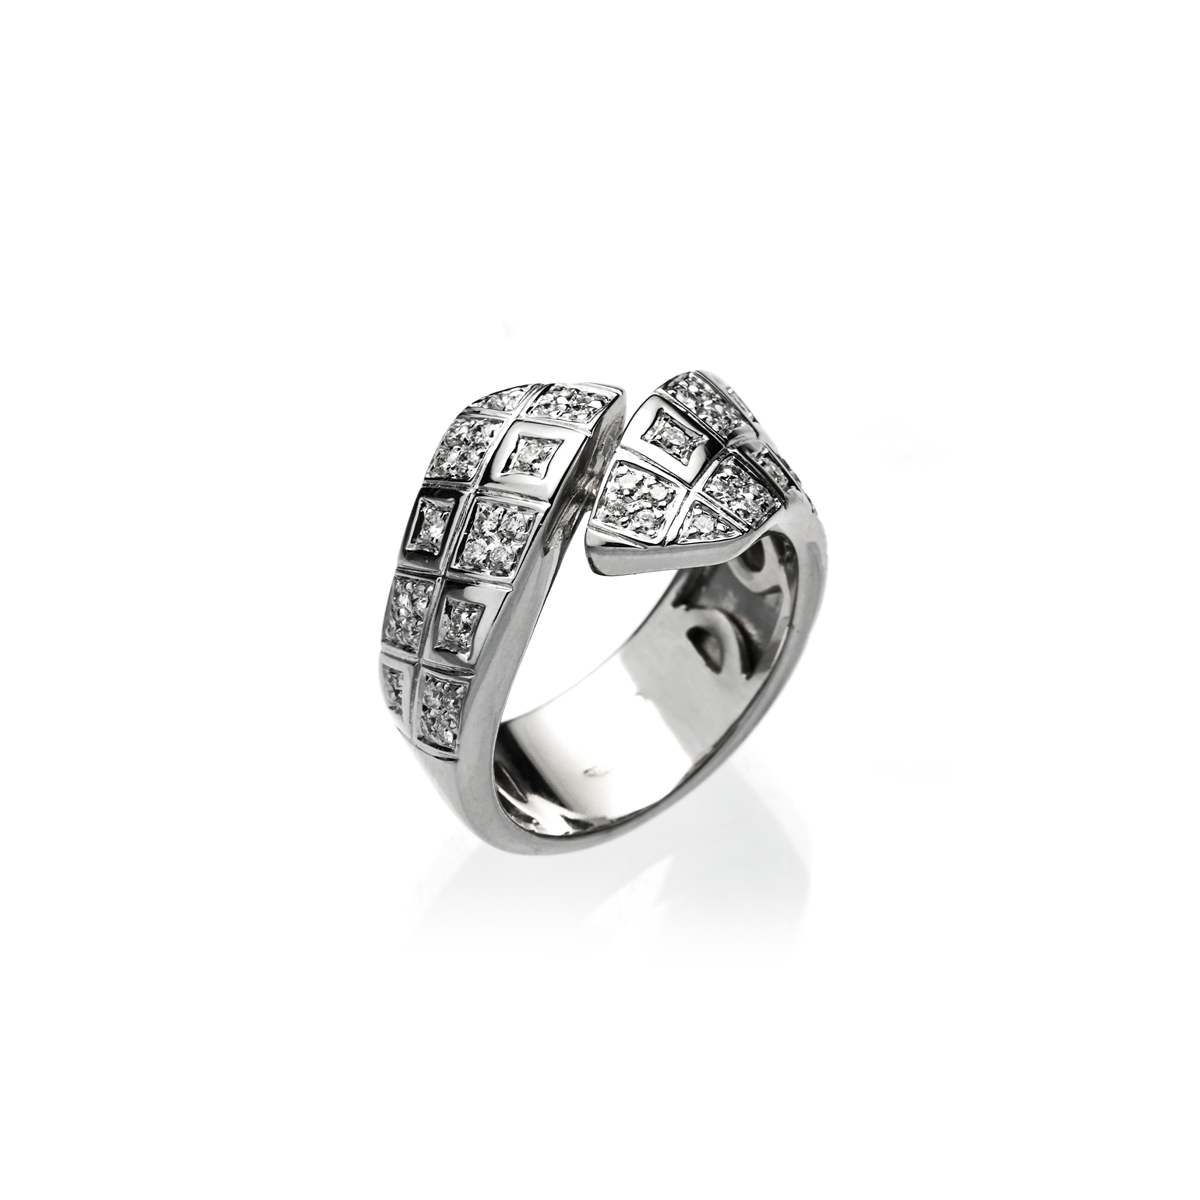 Square Bypass Ring with White Diamonds